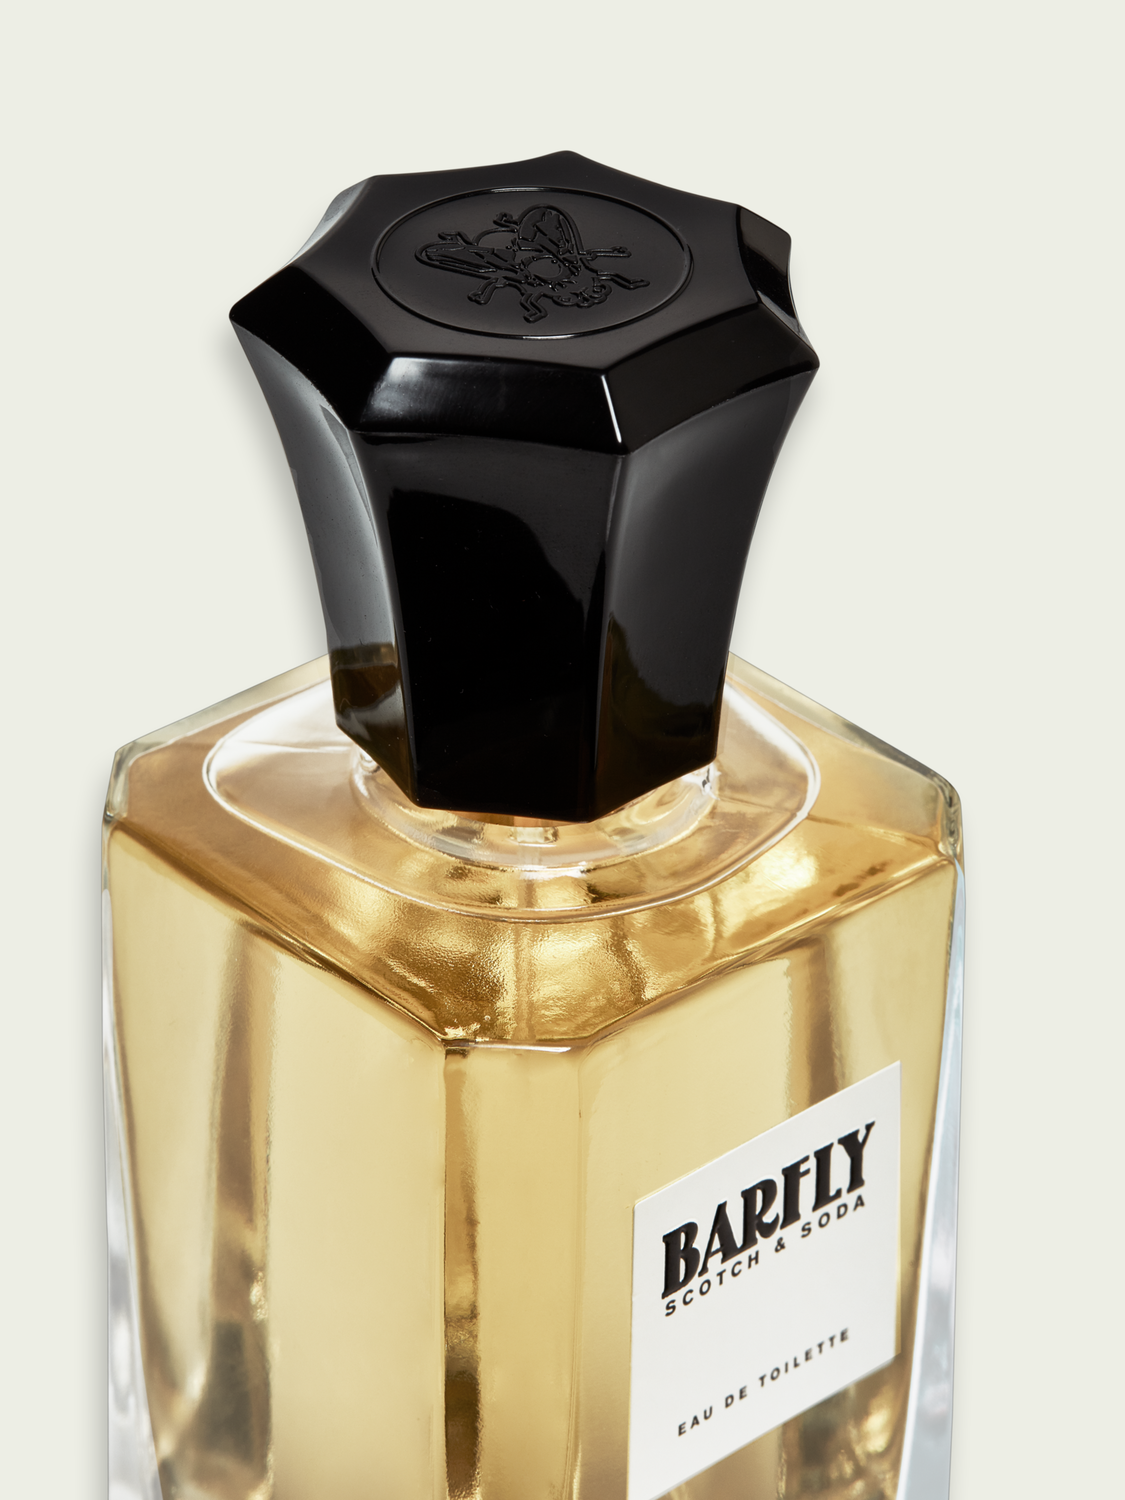 Women BARFLY Unisex fragrance 100ml